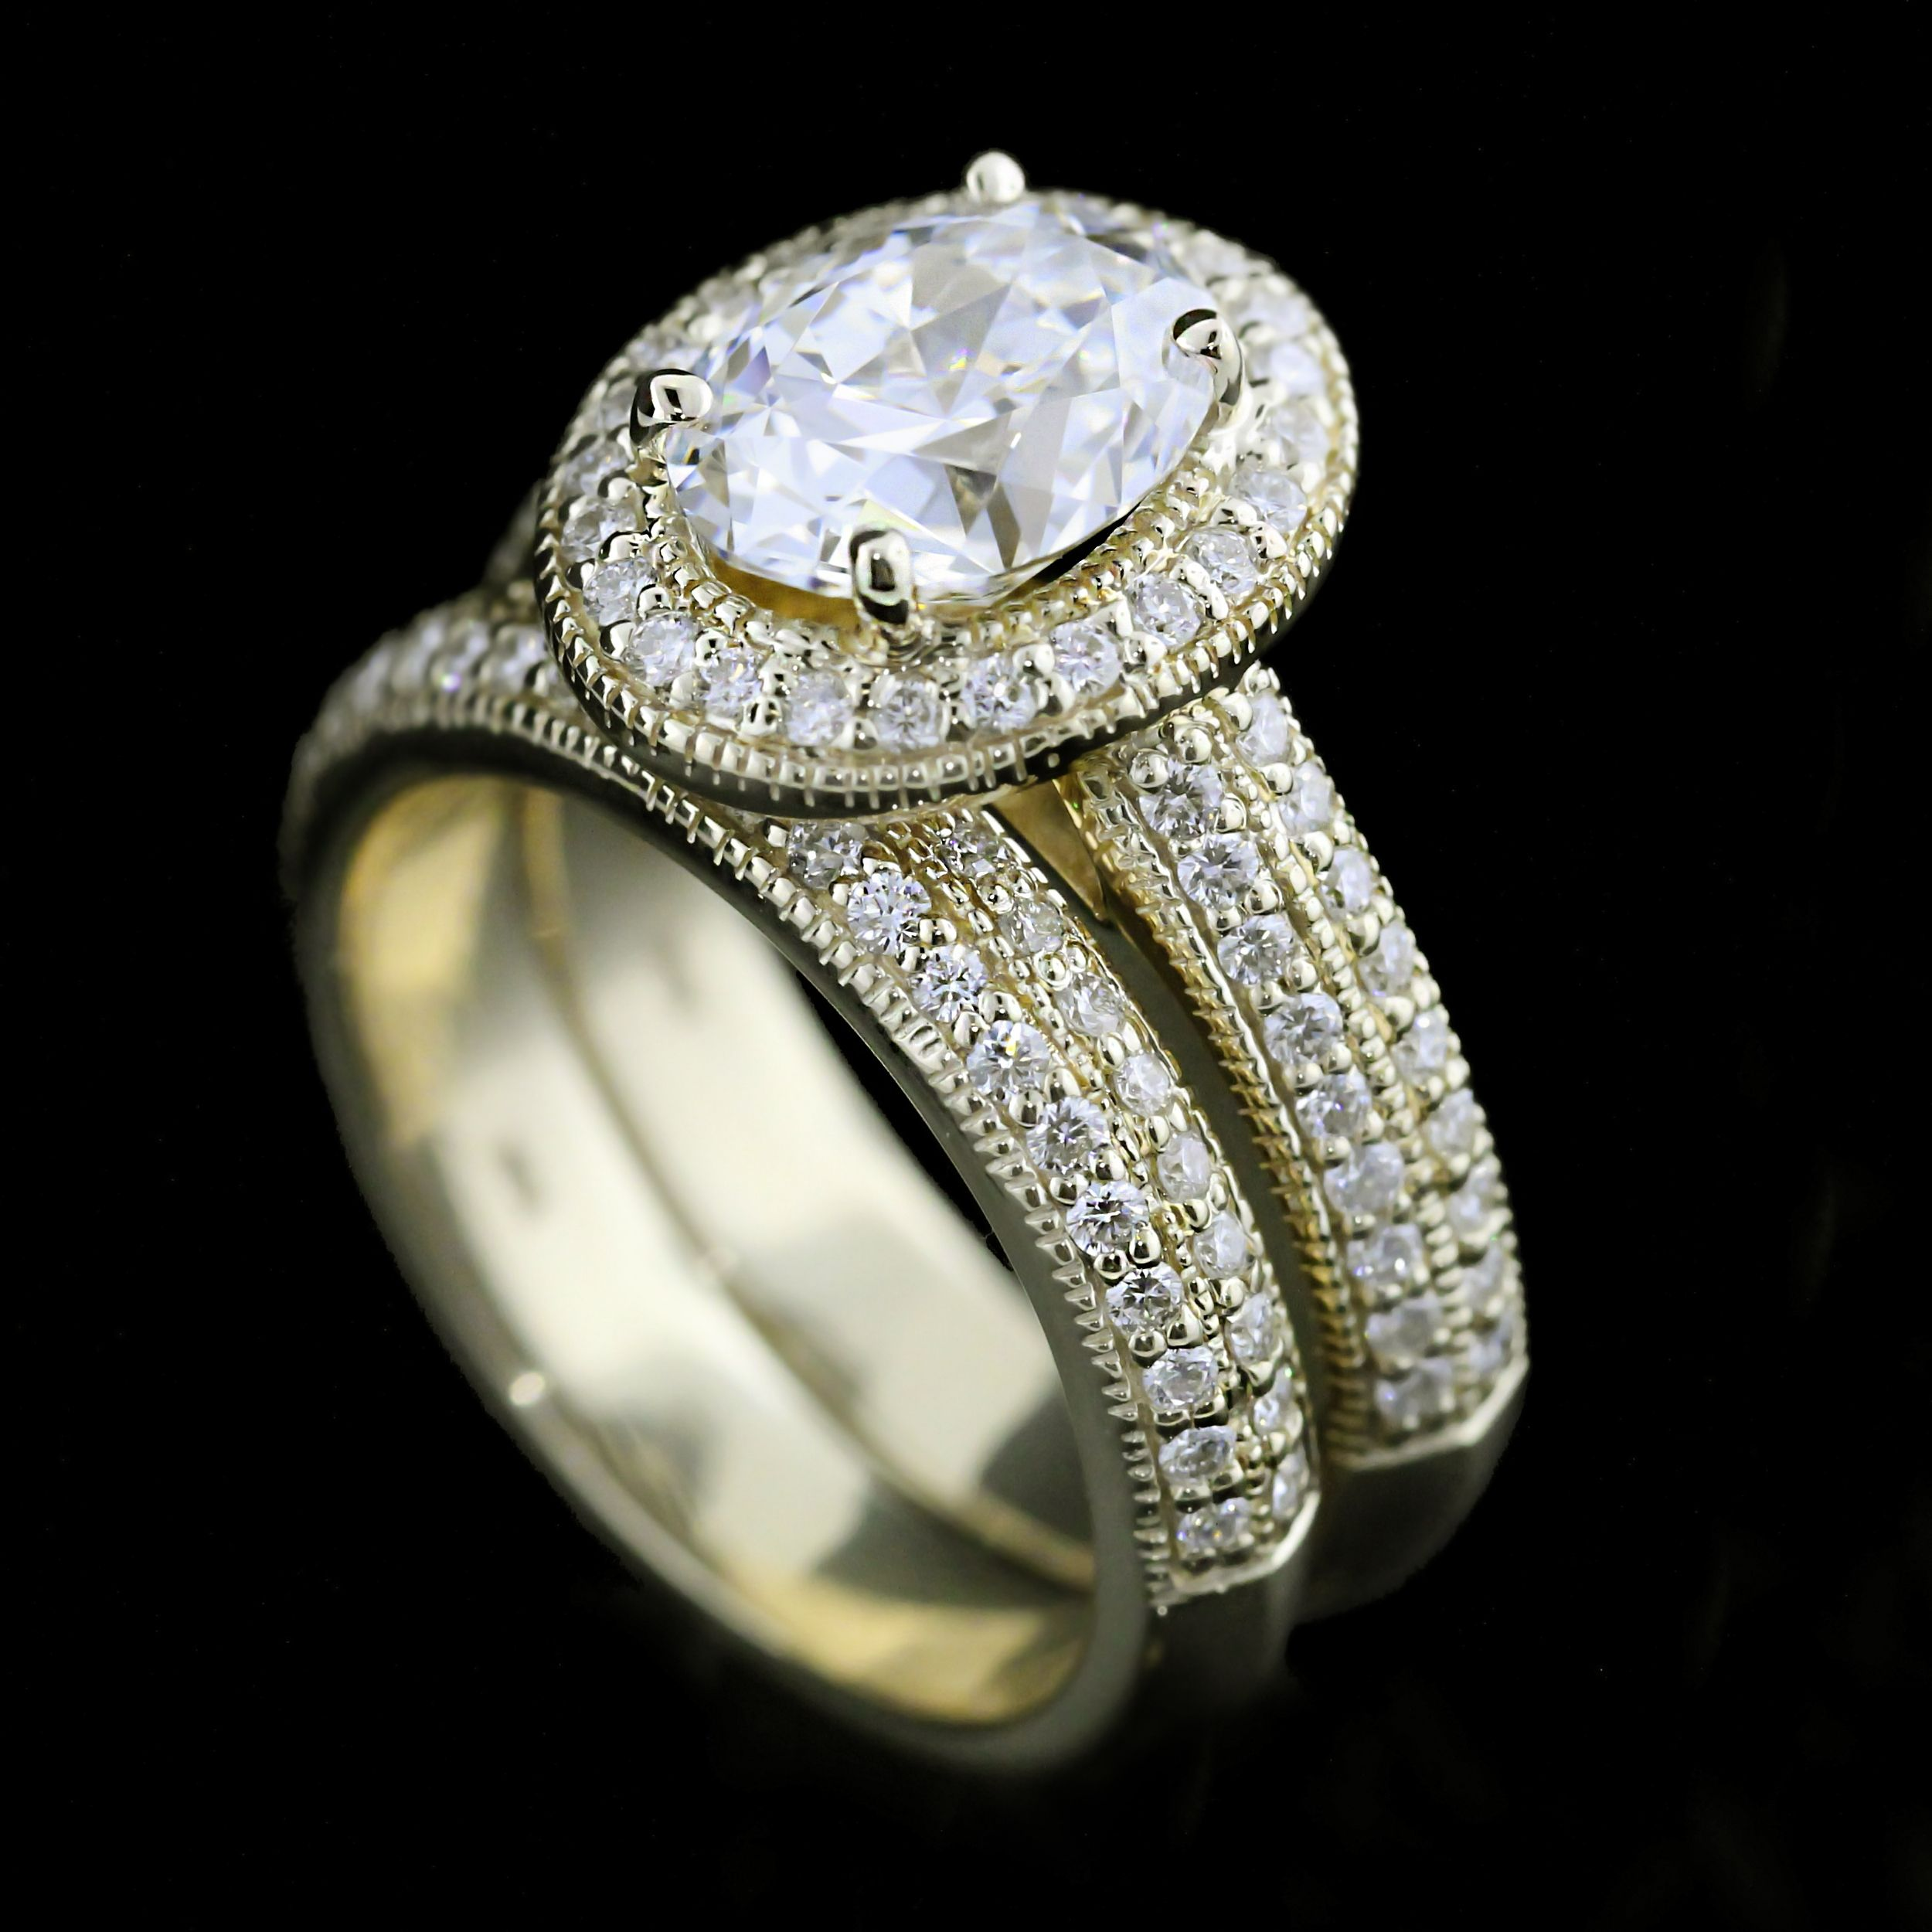 engagement ring of attachment made full man band things wedding elegant beautiful threembride first rings view gallery or